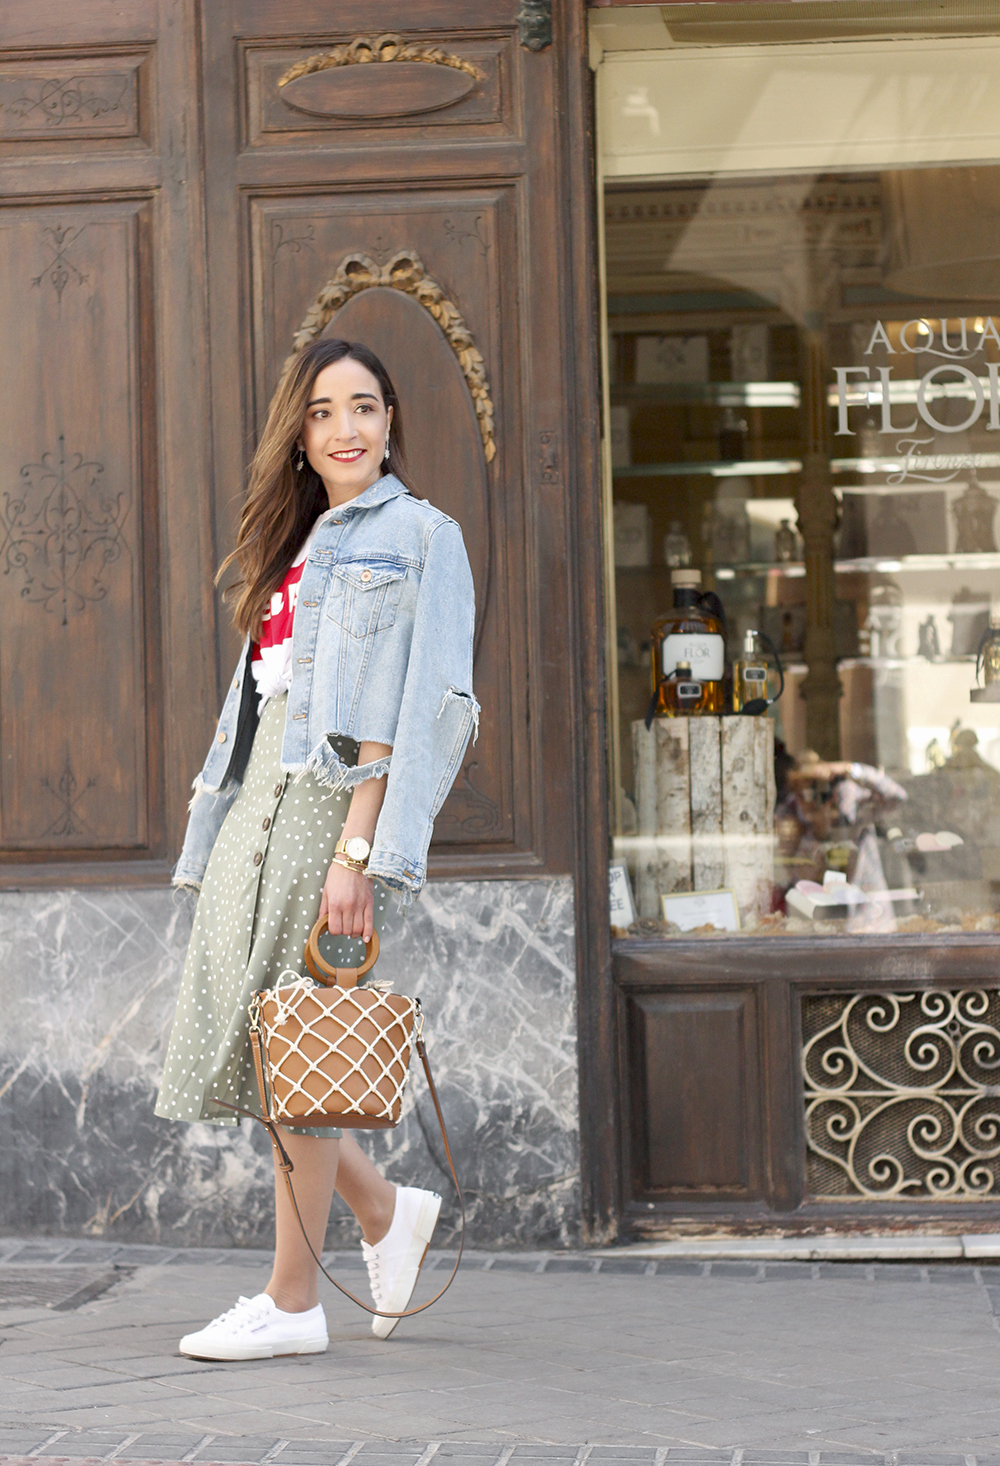 midi polka dots skirt denim jacket levis tshirt superga sneakers street style casual outfit spring 20197